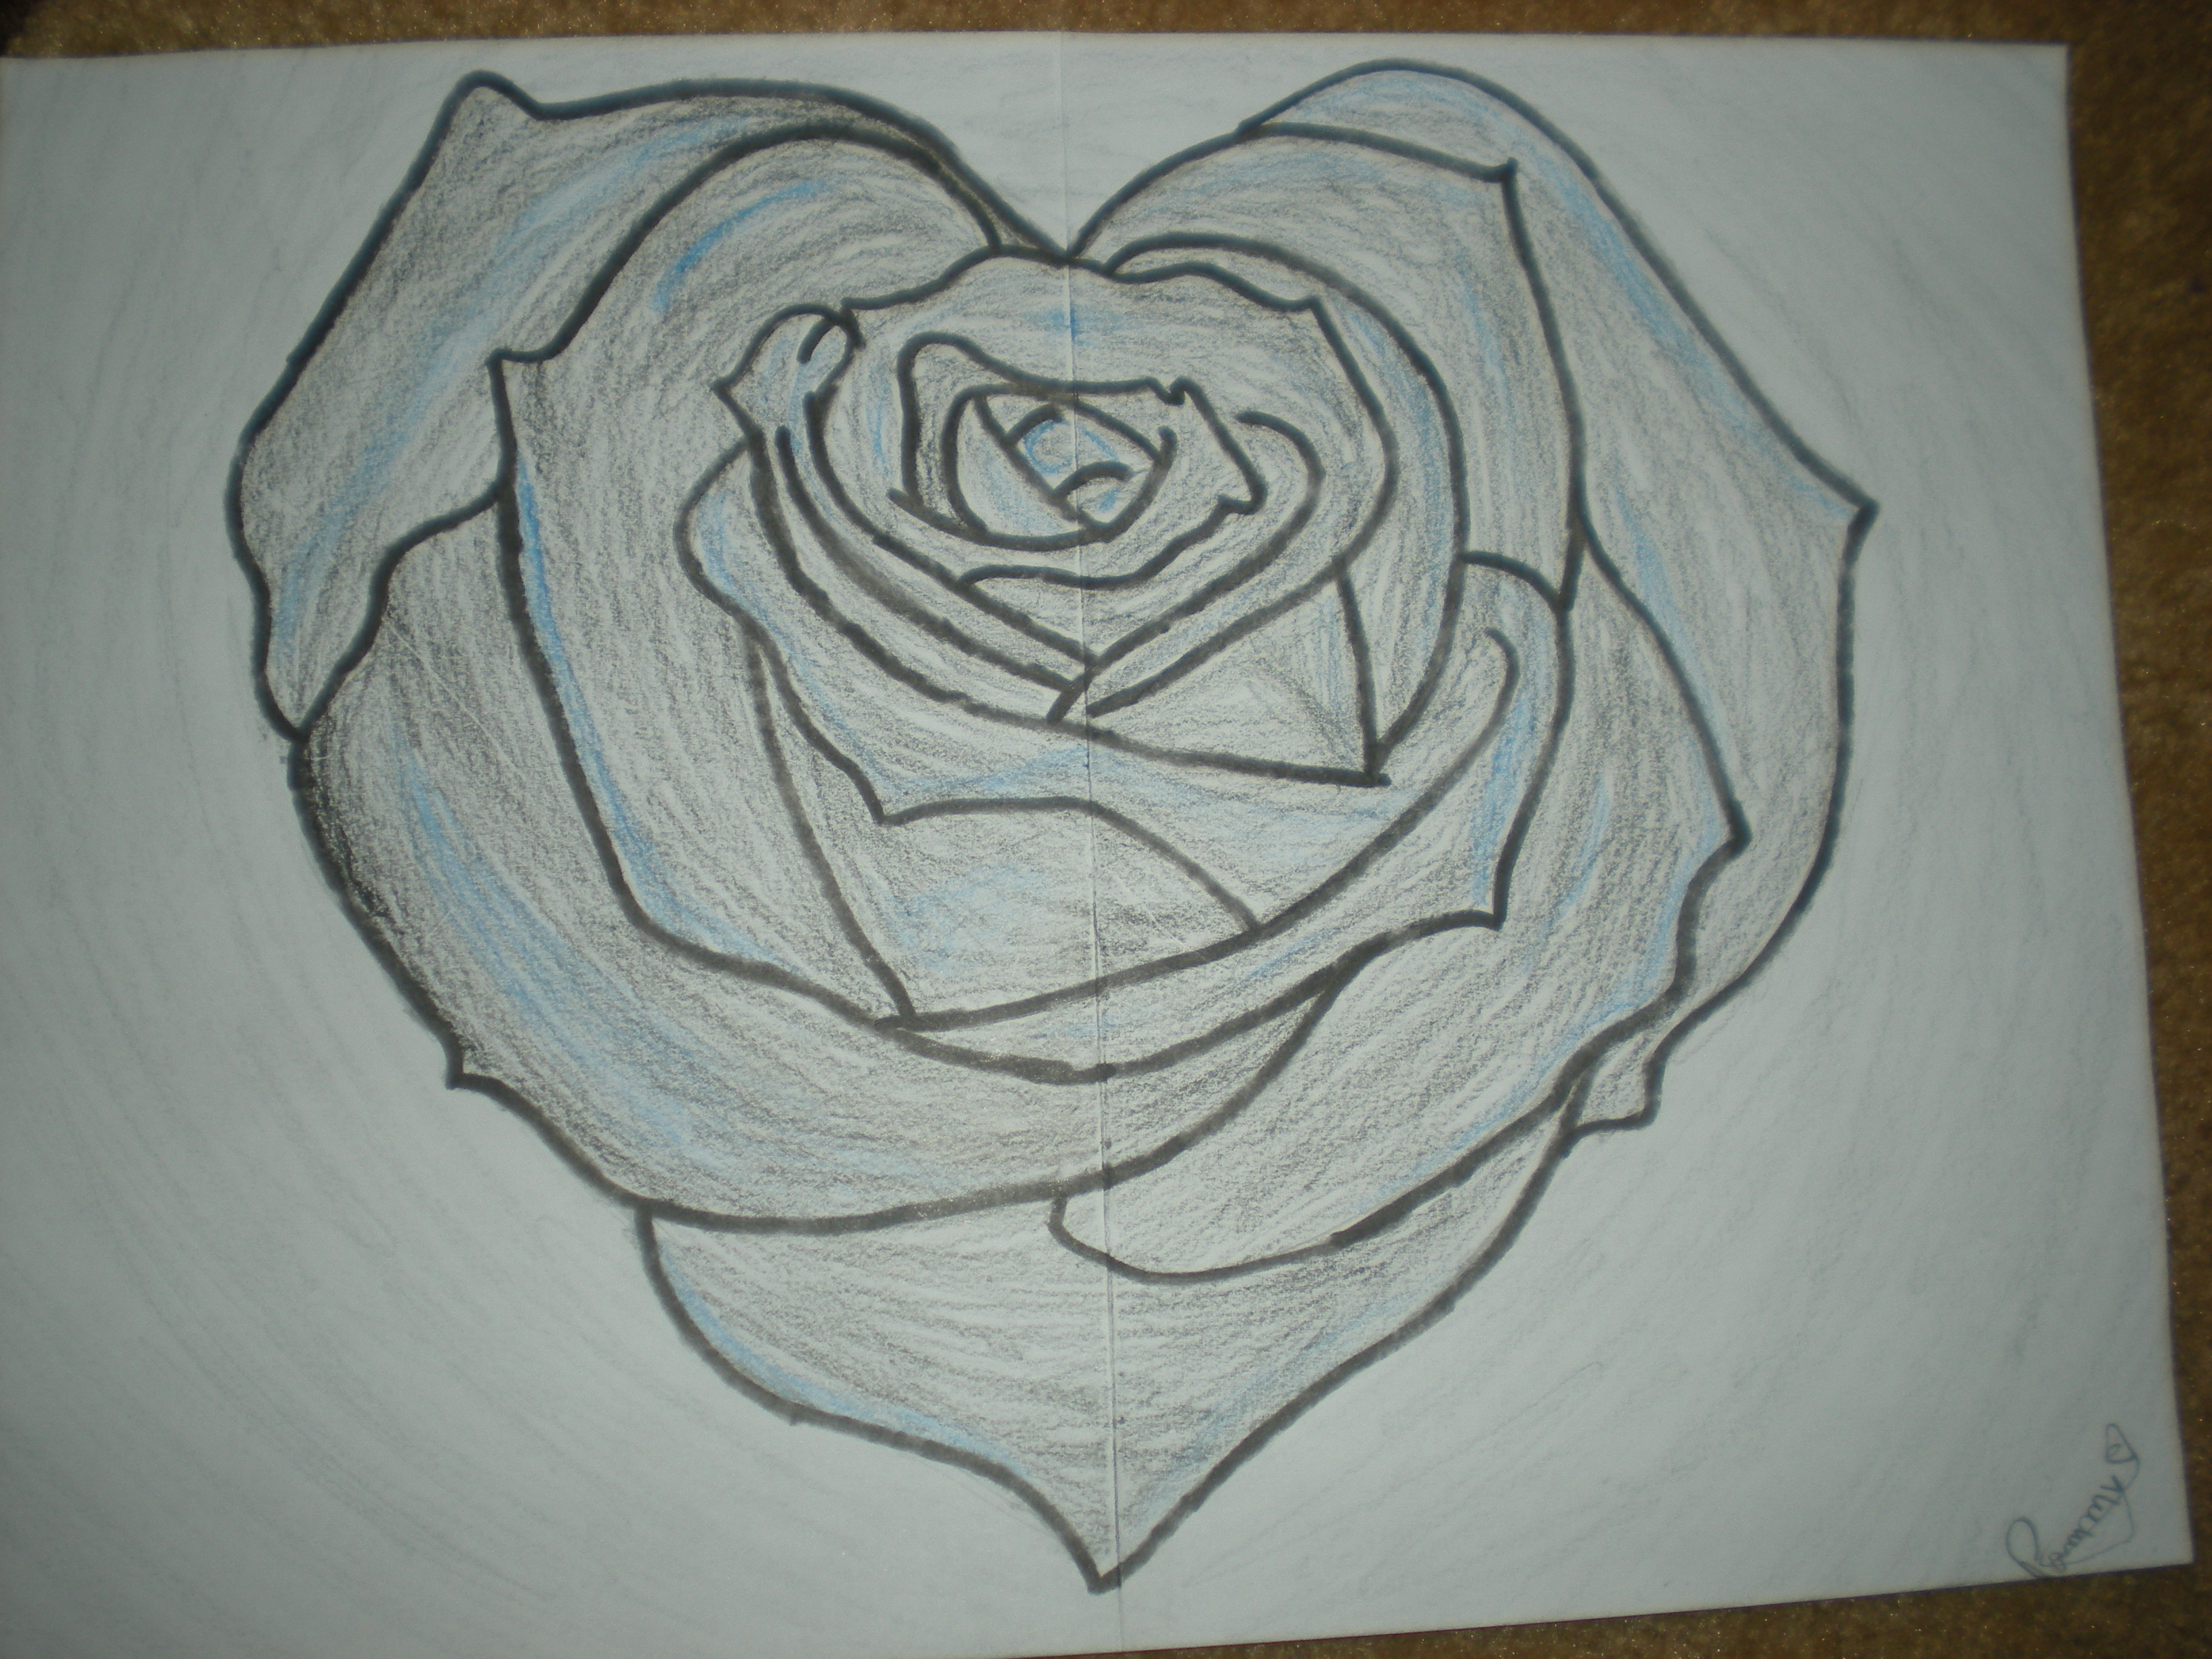 3264x2448 Love Art Sketch Pencil Hd Rose Roses And Heart Drawing Free